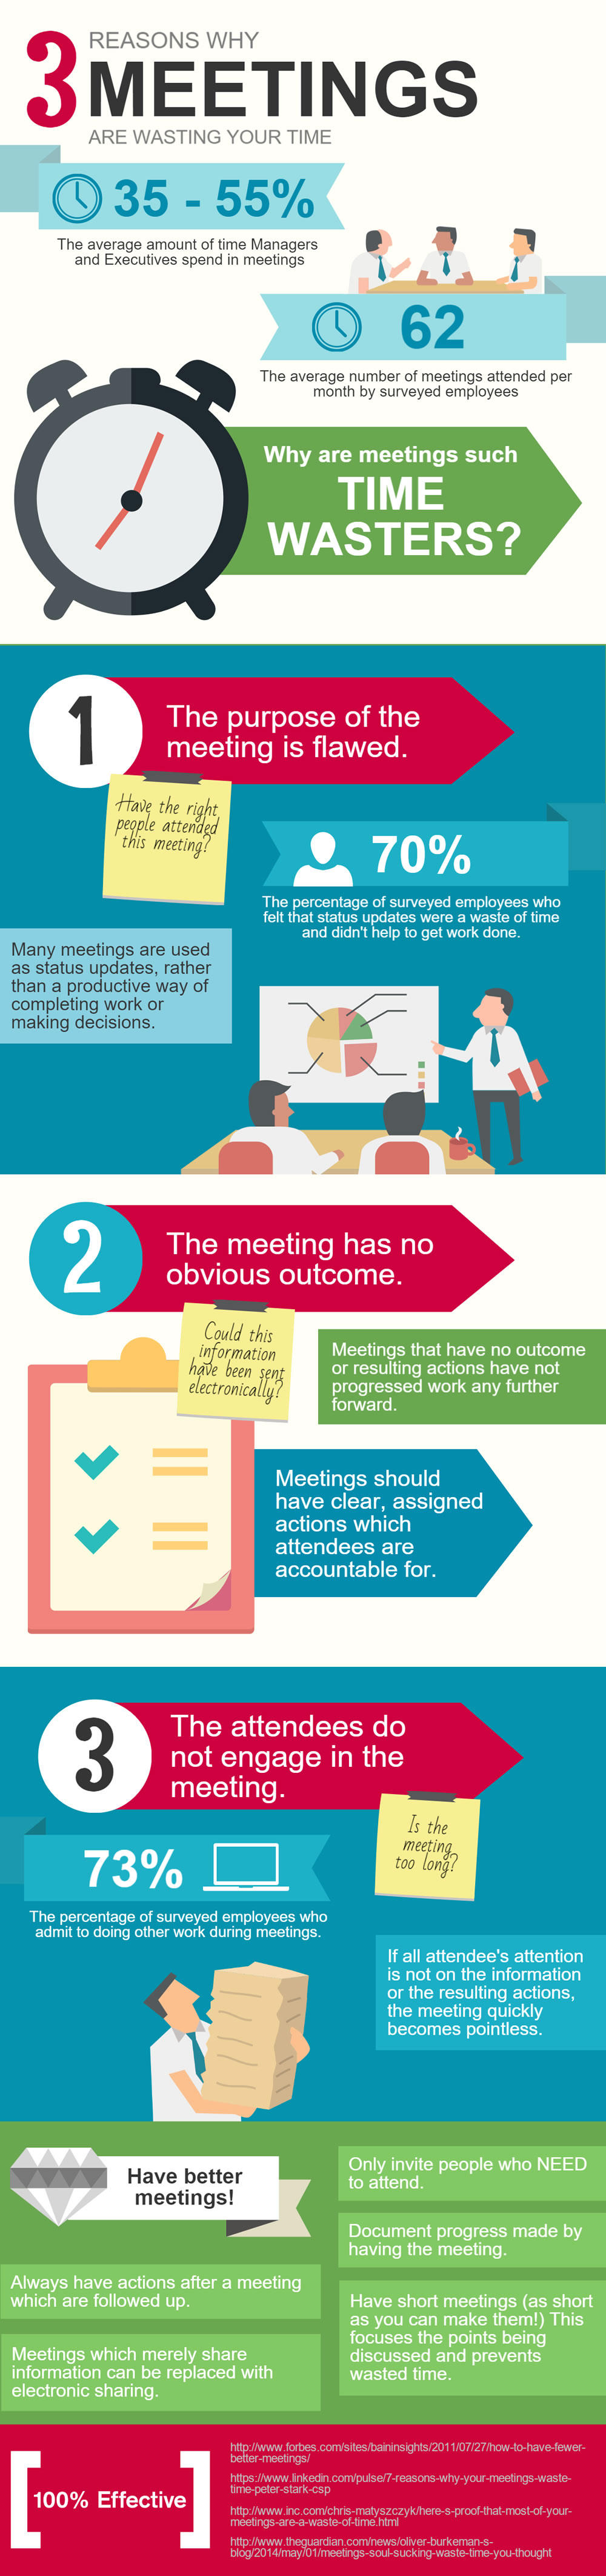 Why are meetings are wasting your time infographic